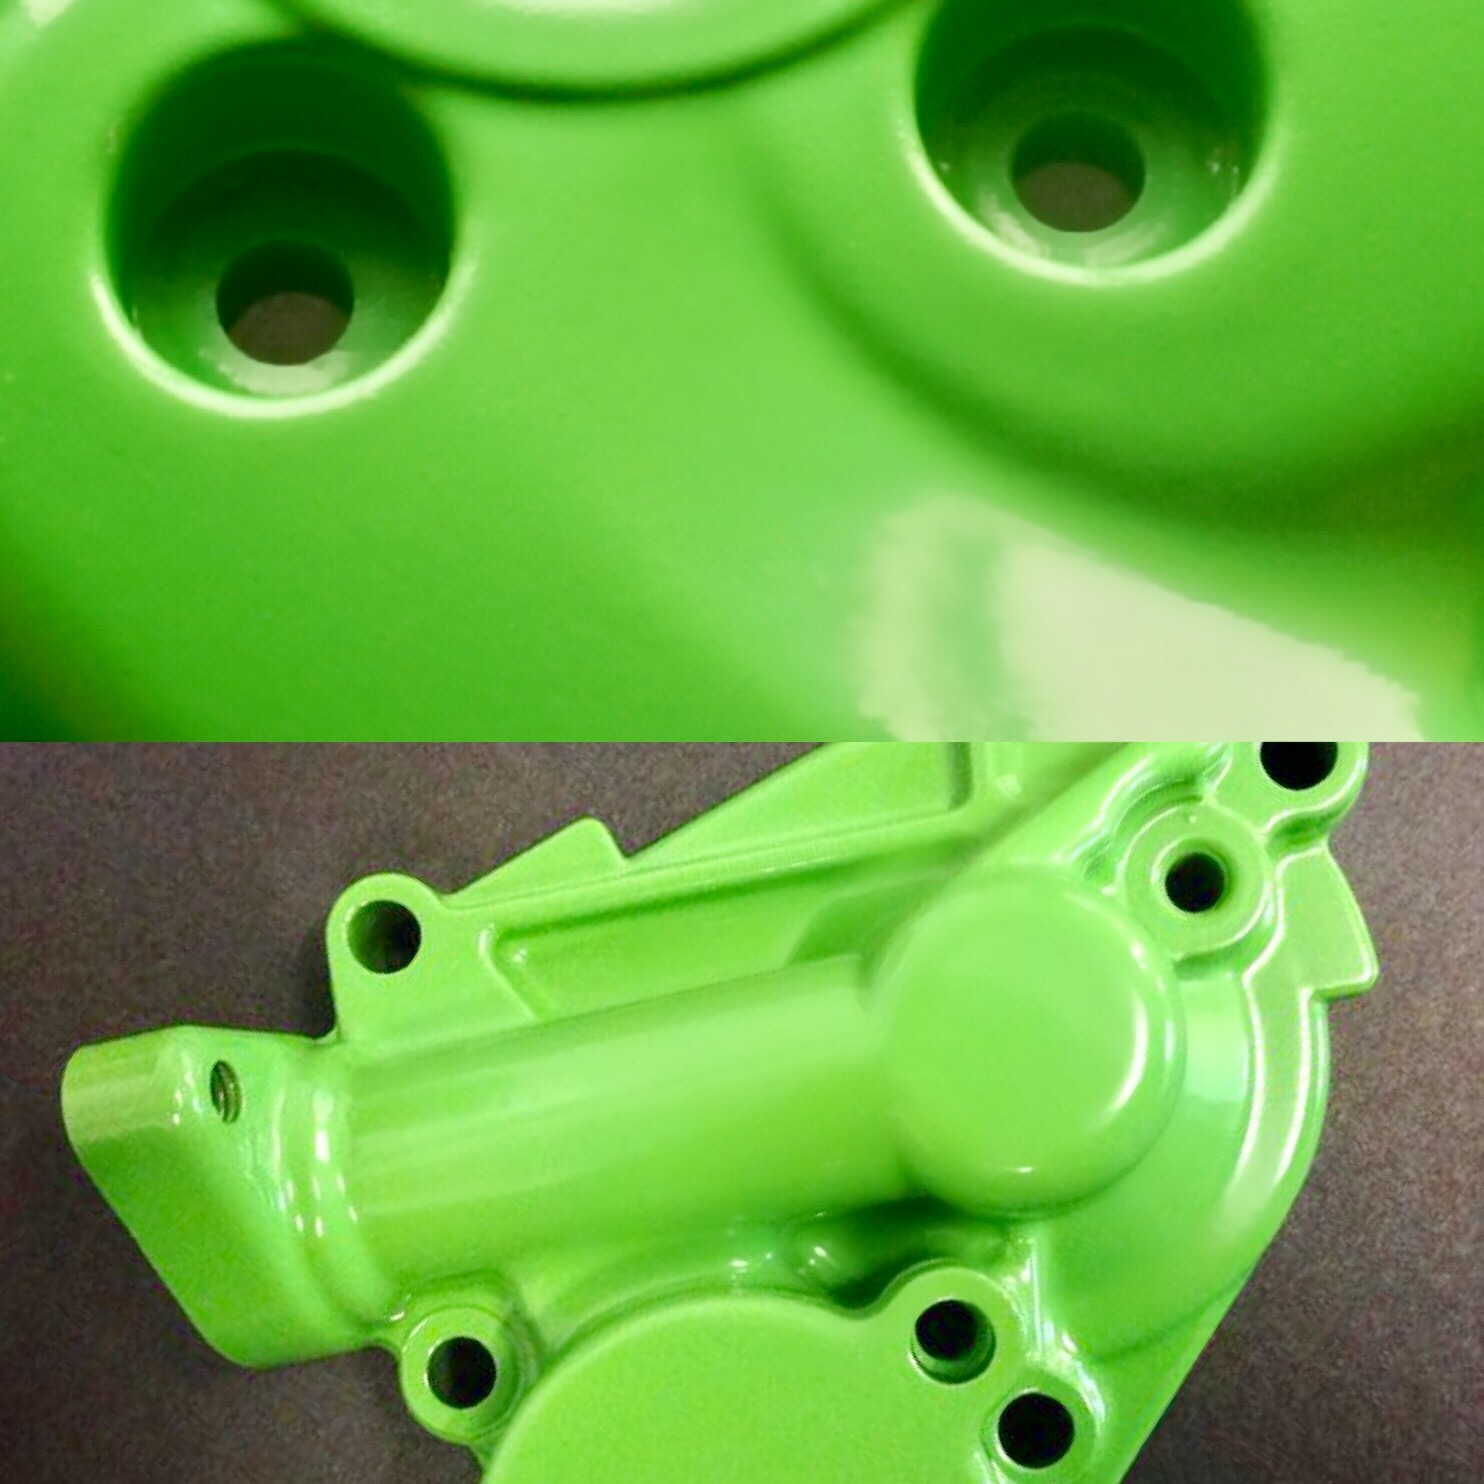 Green - High gloss finish